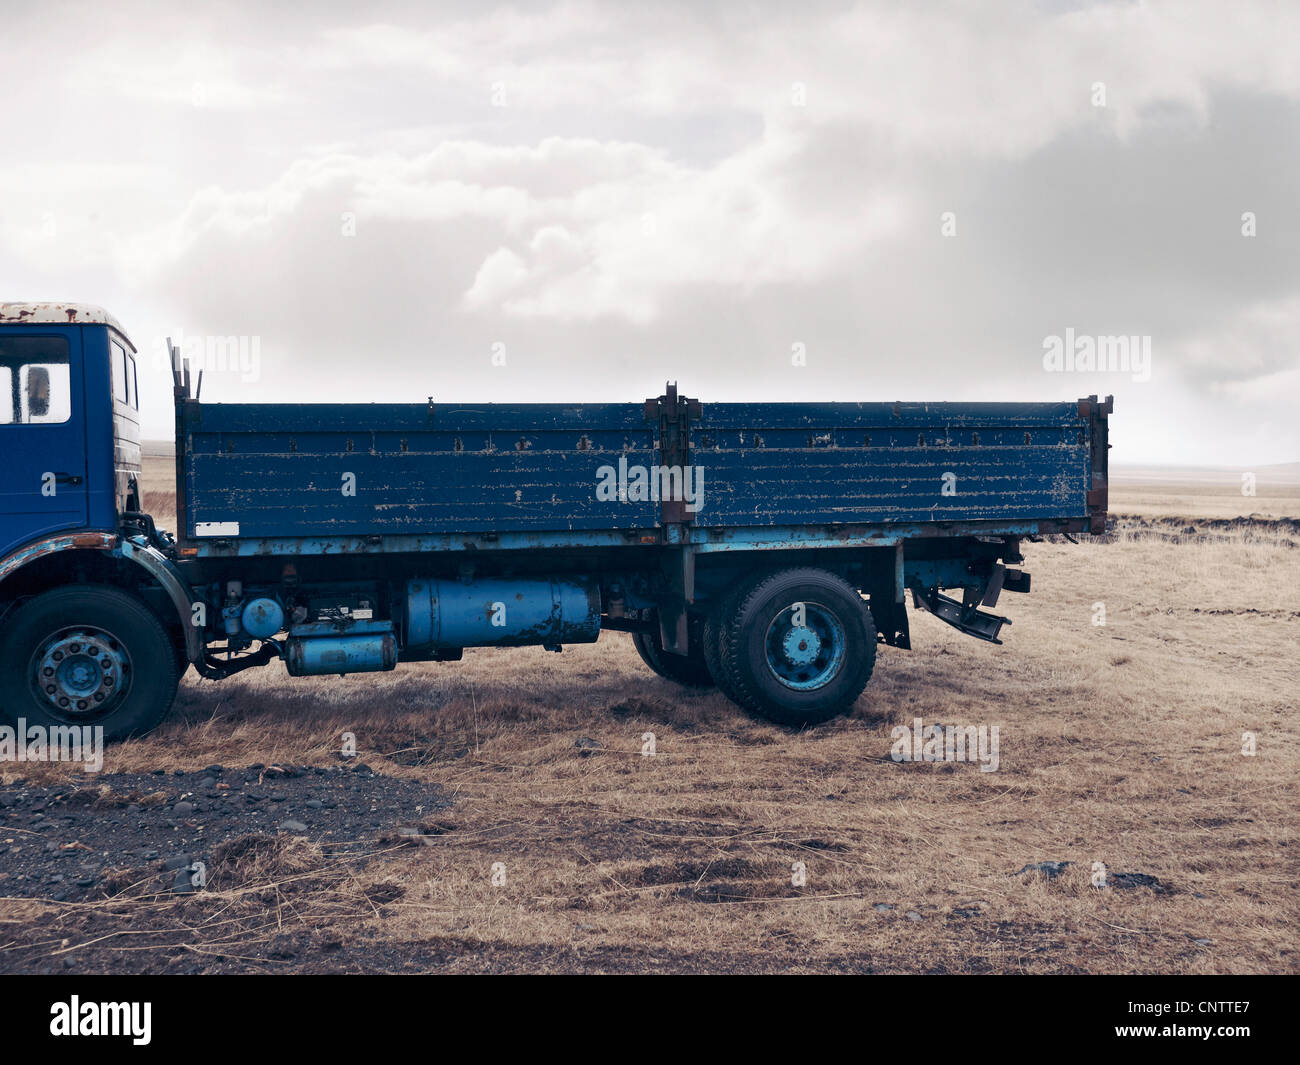 Blue truck parked in dry field - Stock Image